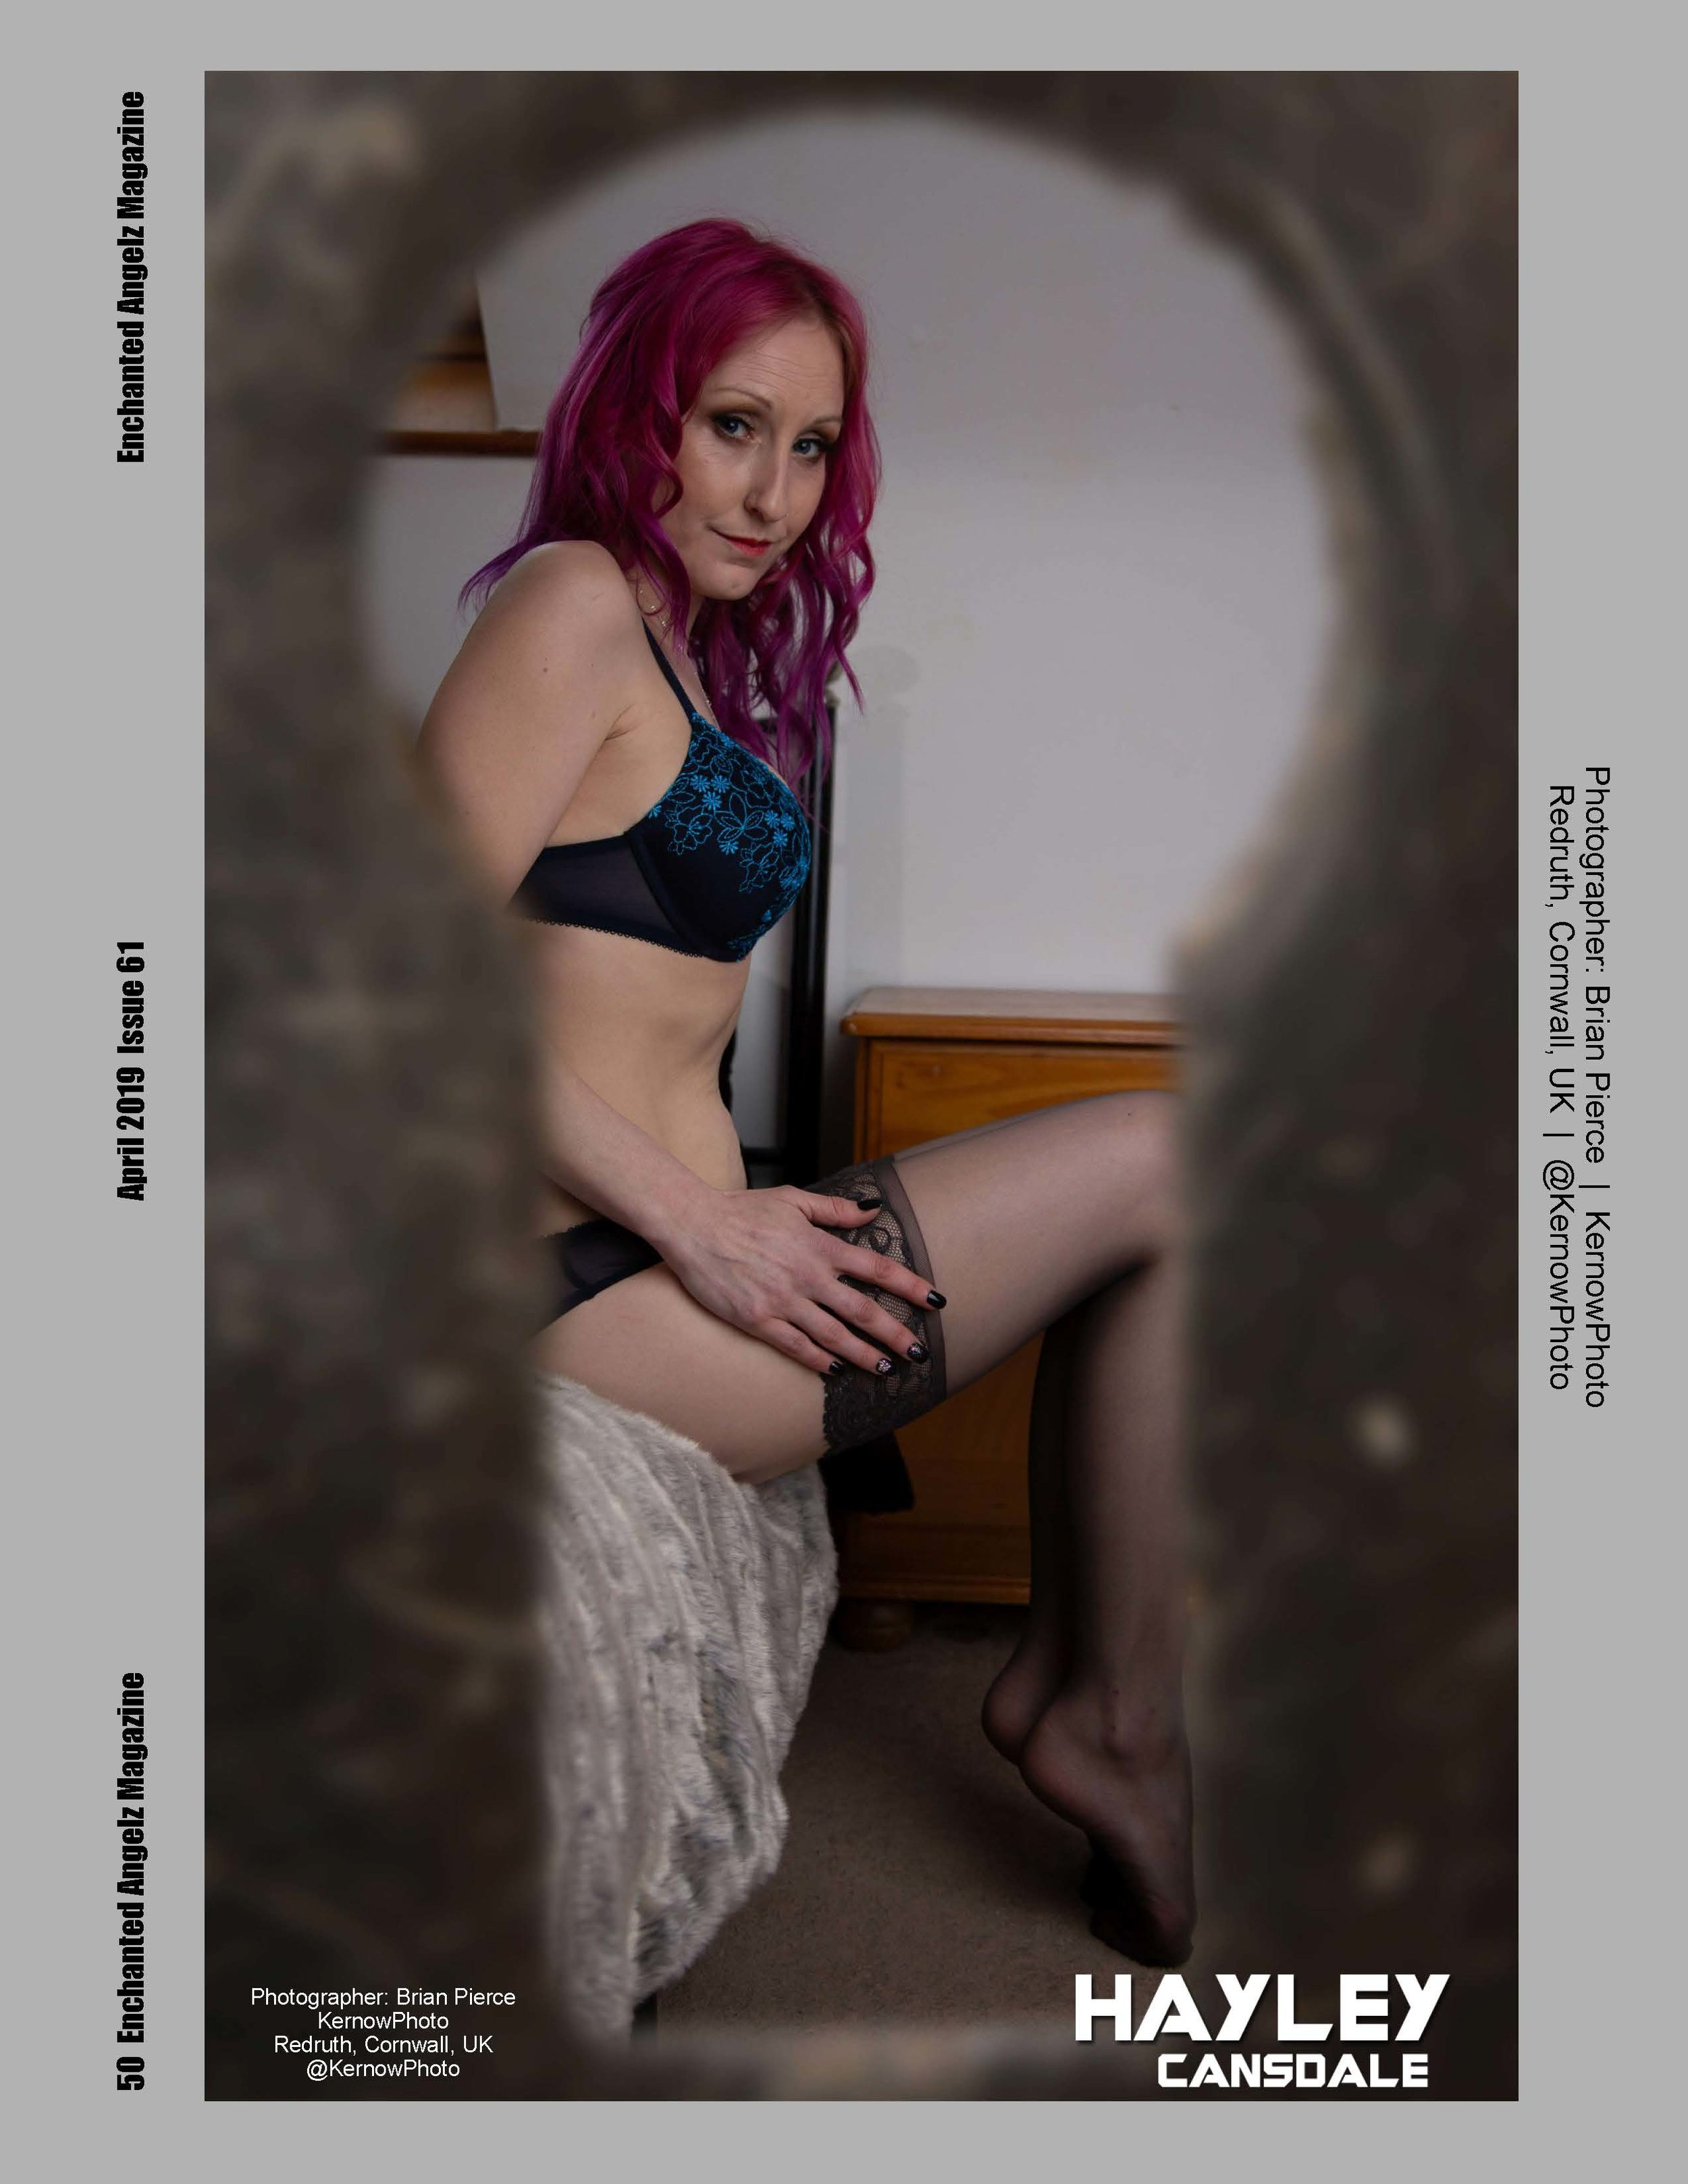 Hayley Cansdale - Apr 2019